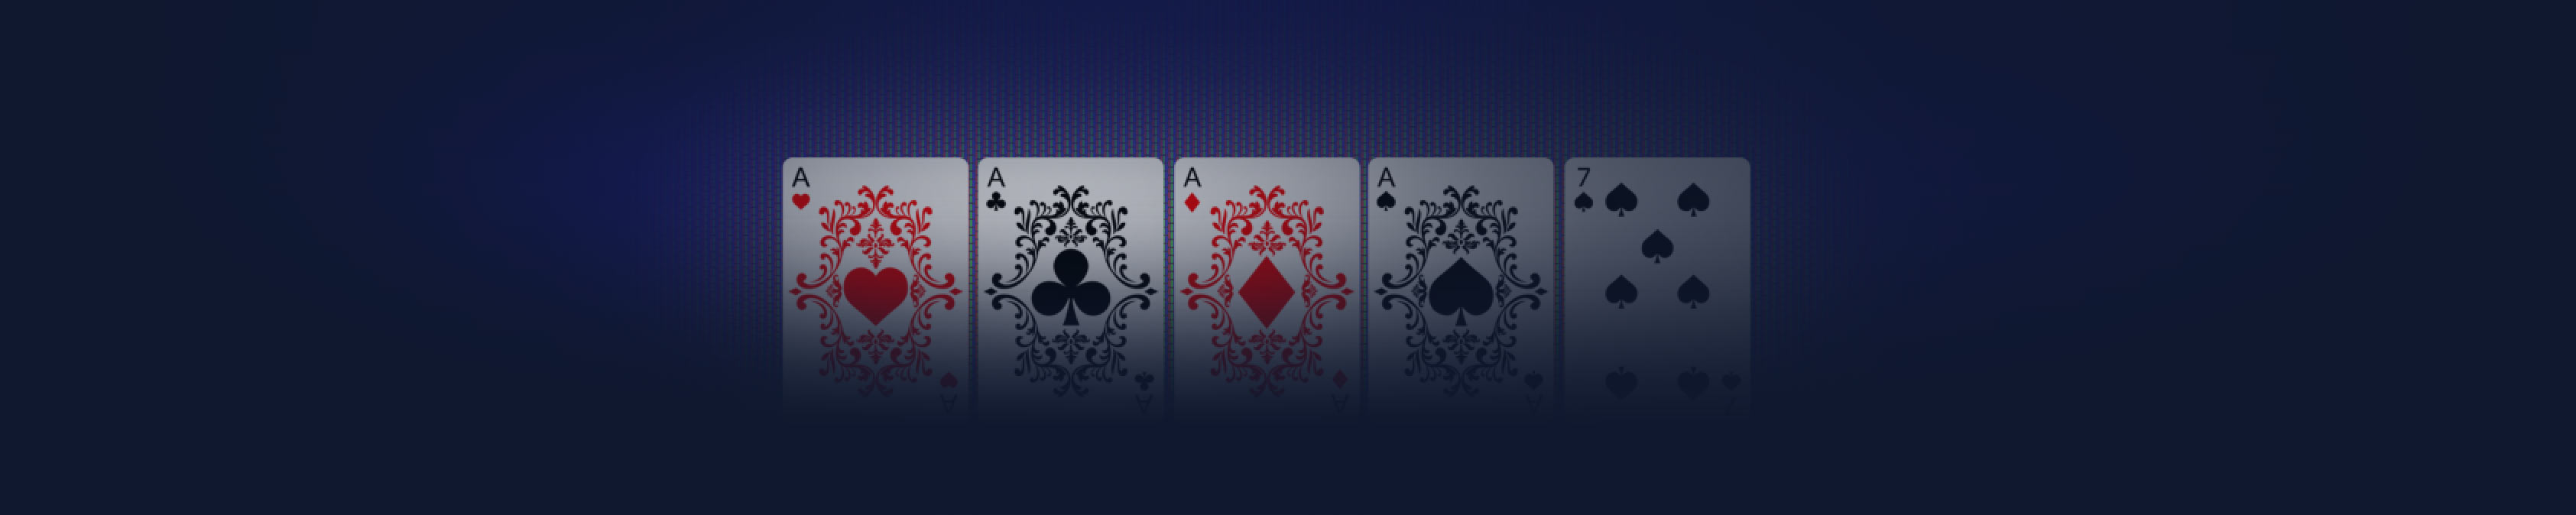 Videopoker casinosearch.cz